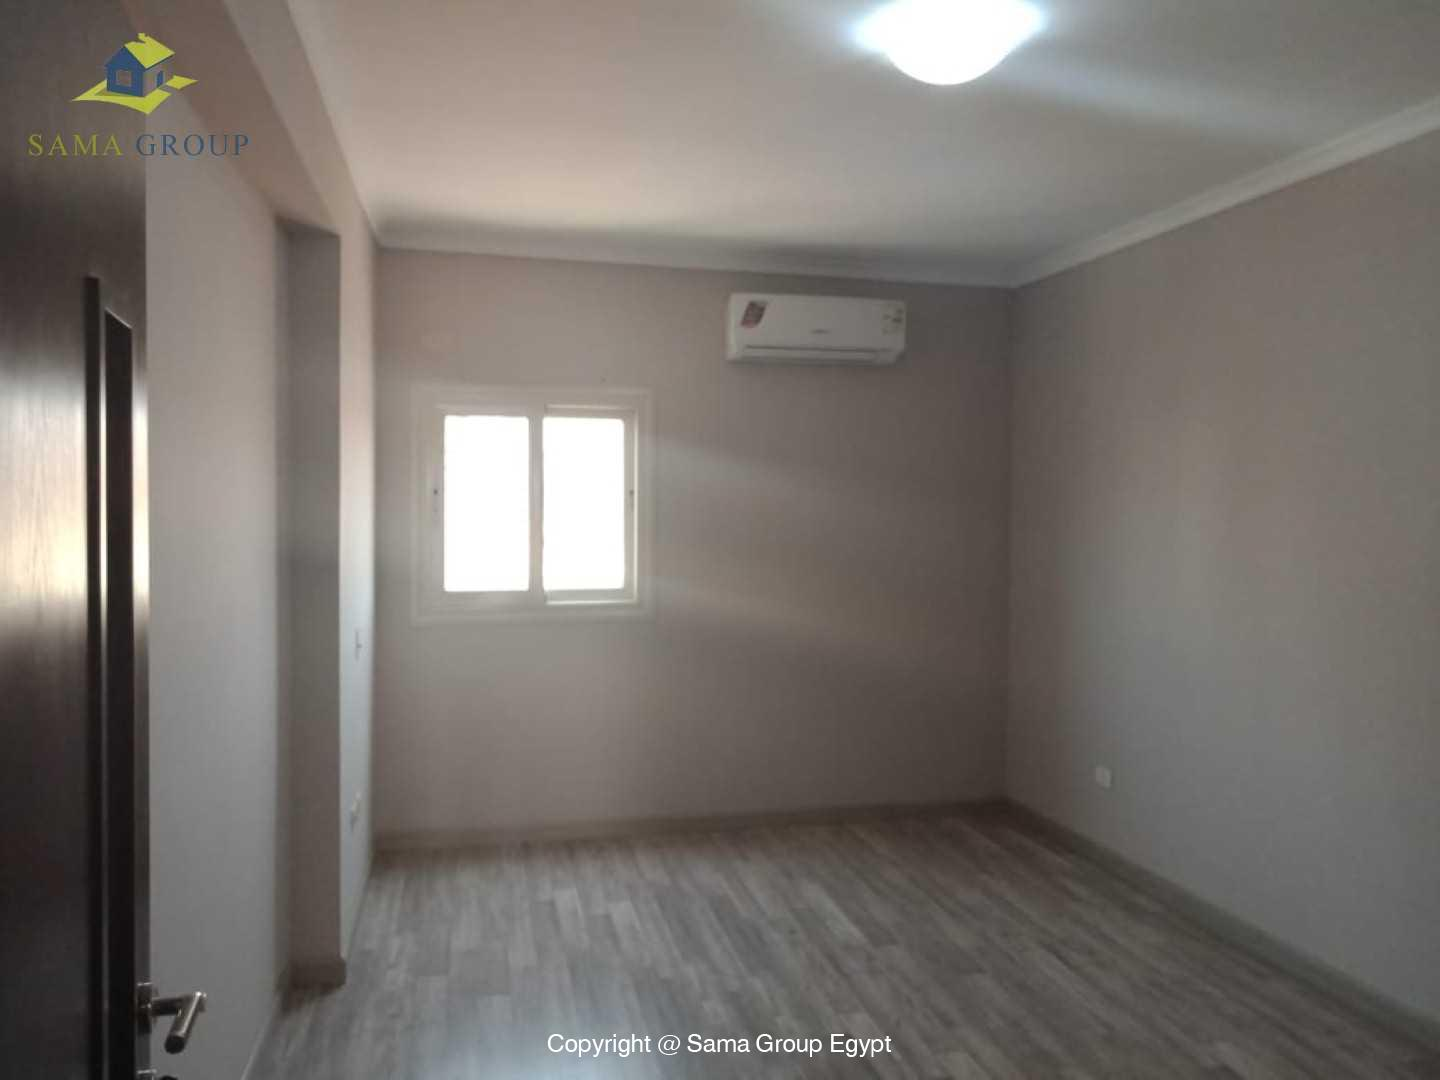 Penthouse For Rent In Maadi Sarayat,Semi furnished,Penthouse NO #7